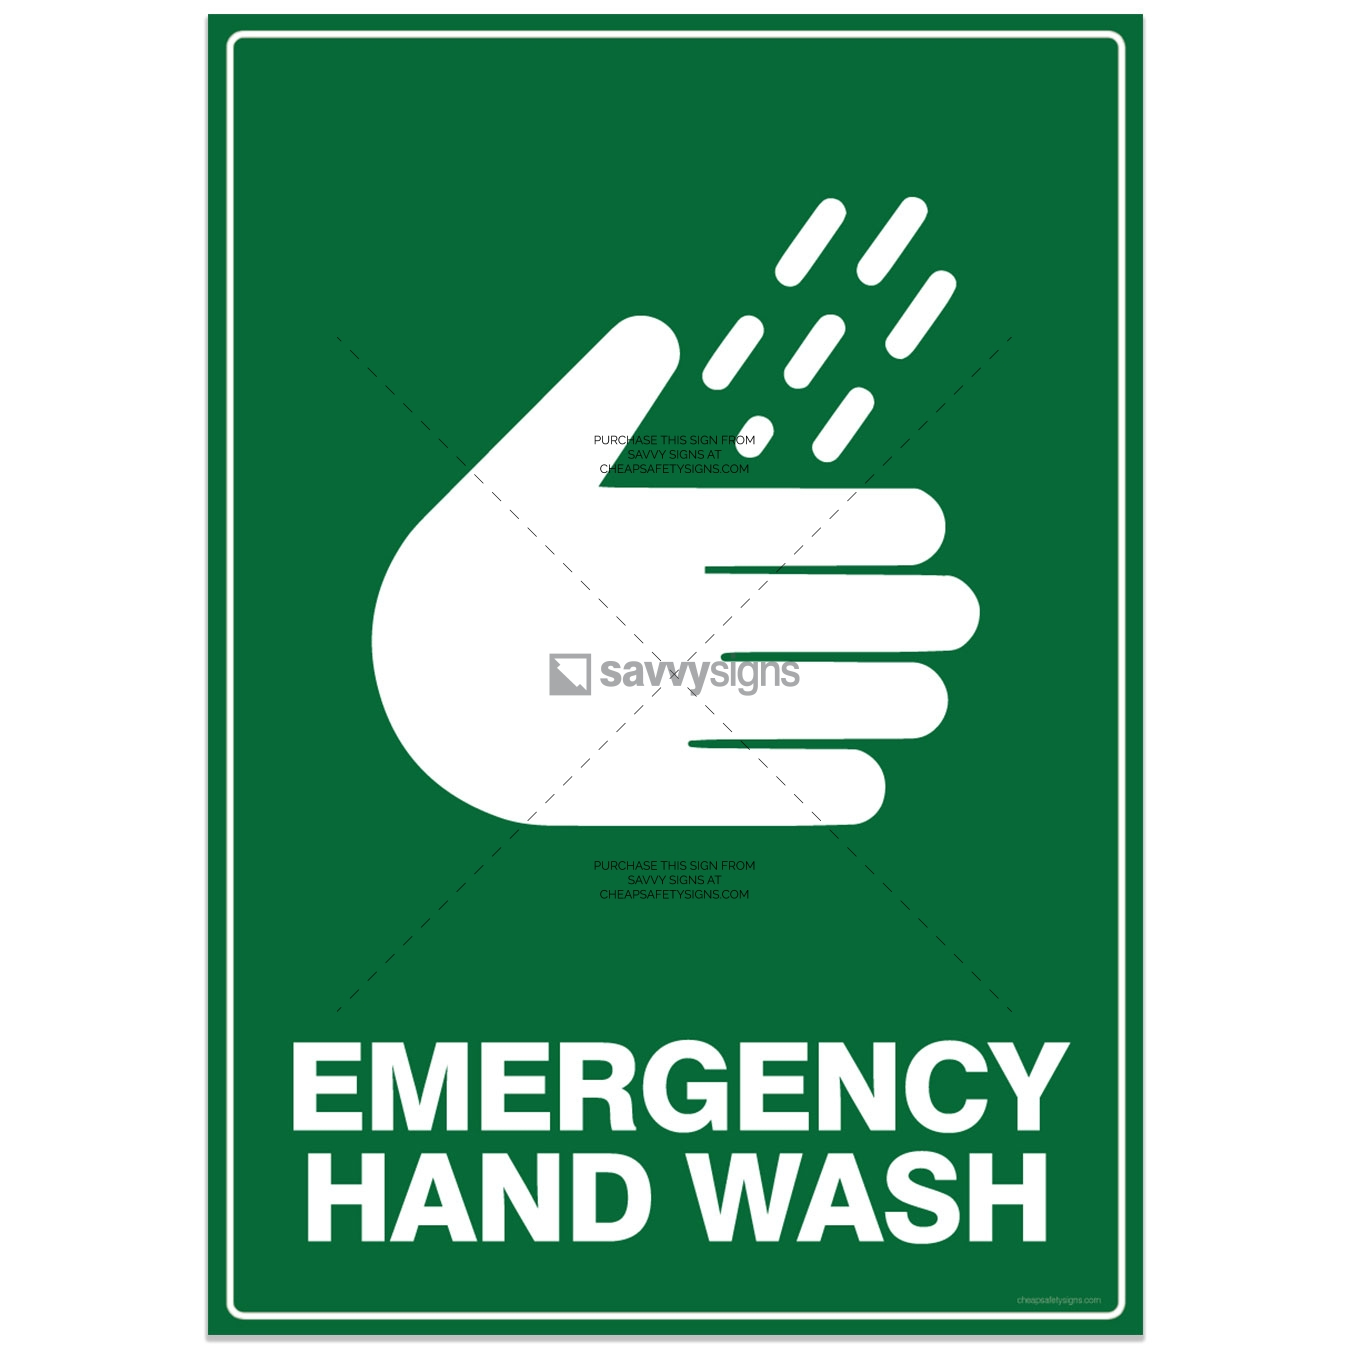 SSEME3055-EMERGENCY-Workplace-Safety-Signs_Savvy-Signs_v4